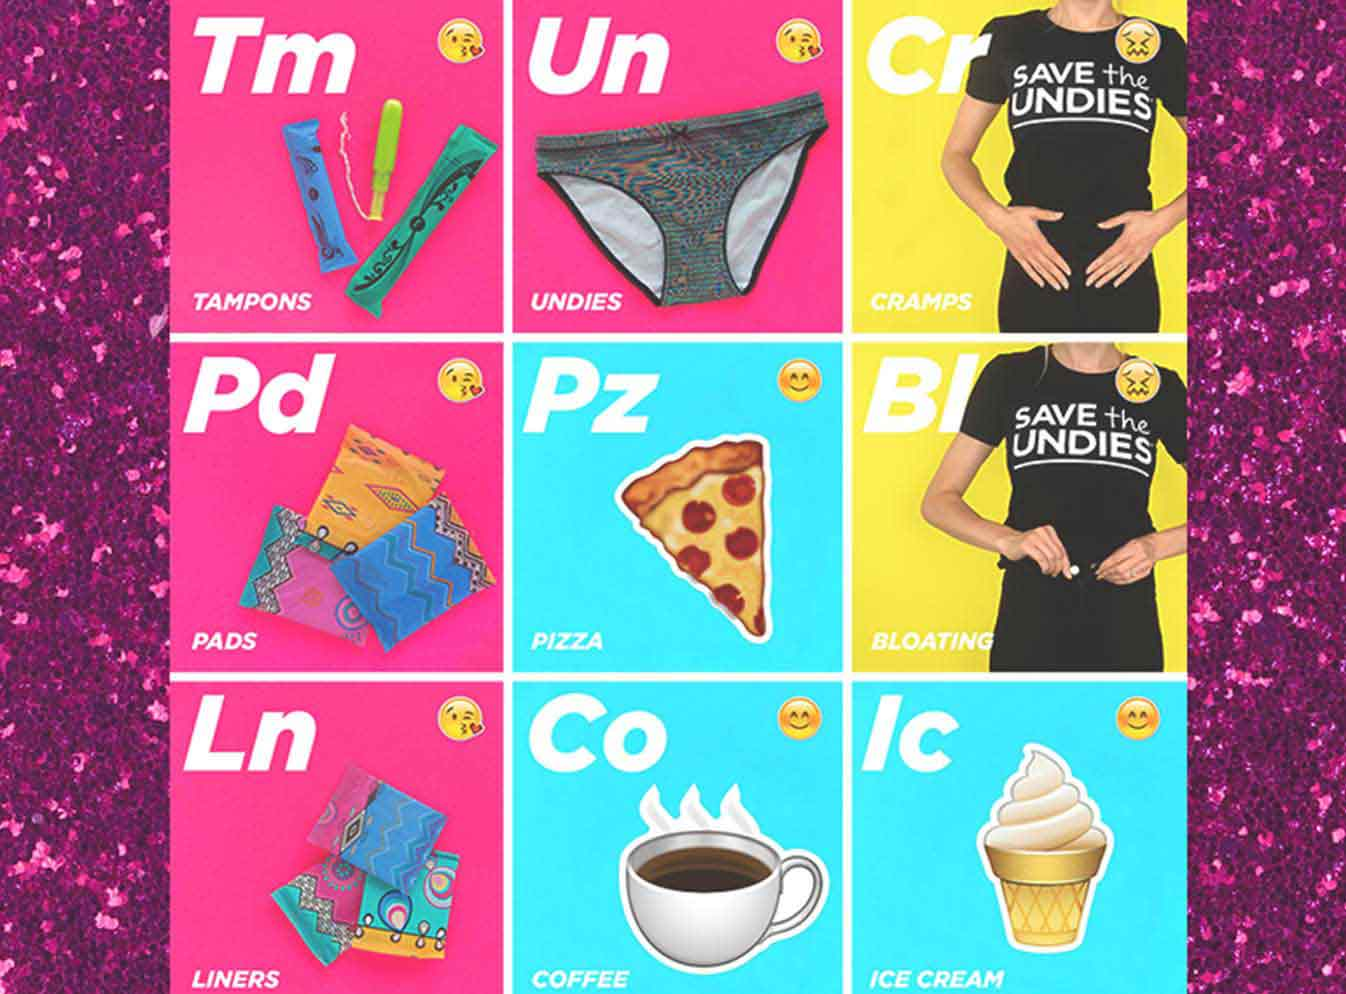 Tampons, pads, liners, underwear, pizza, coffee, icecream icons